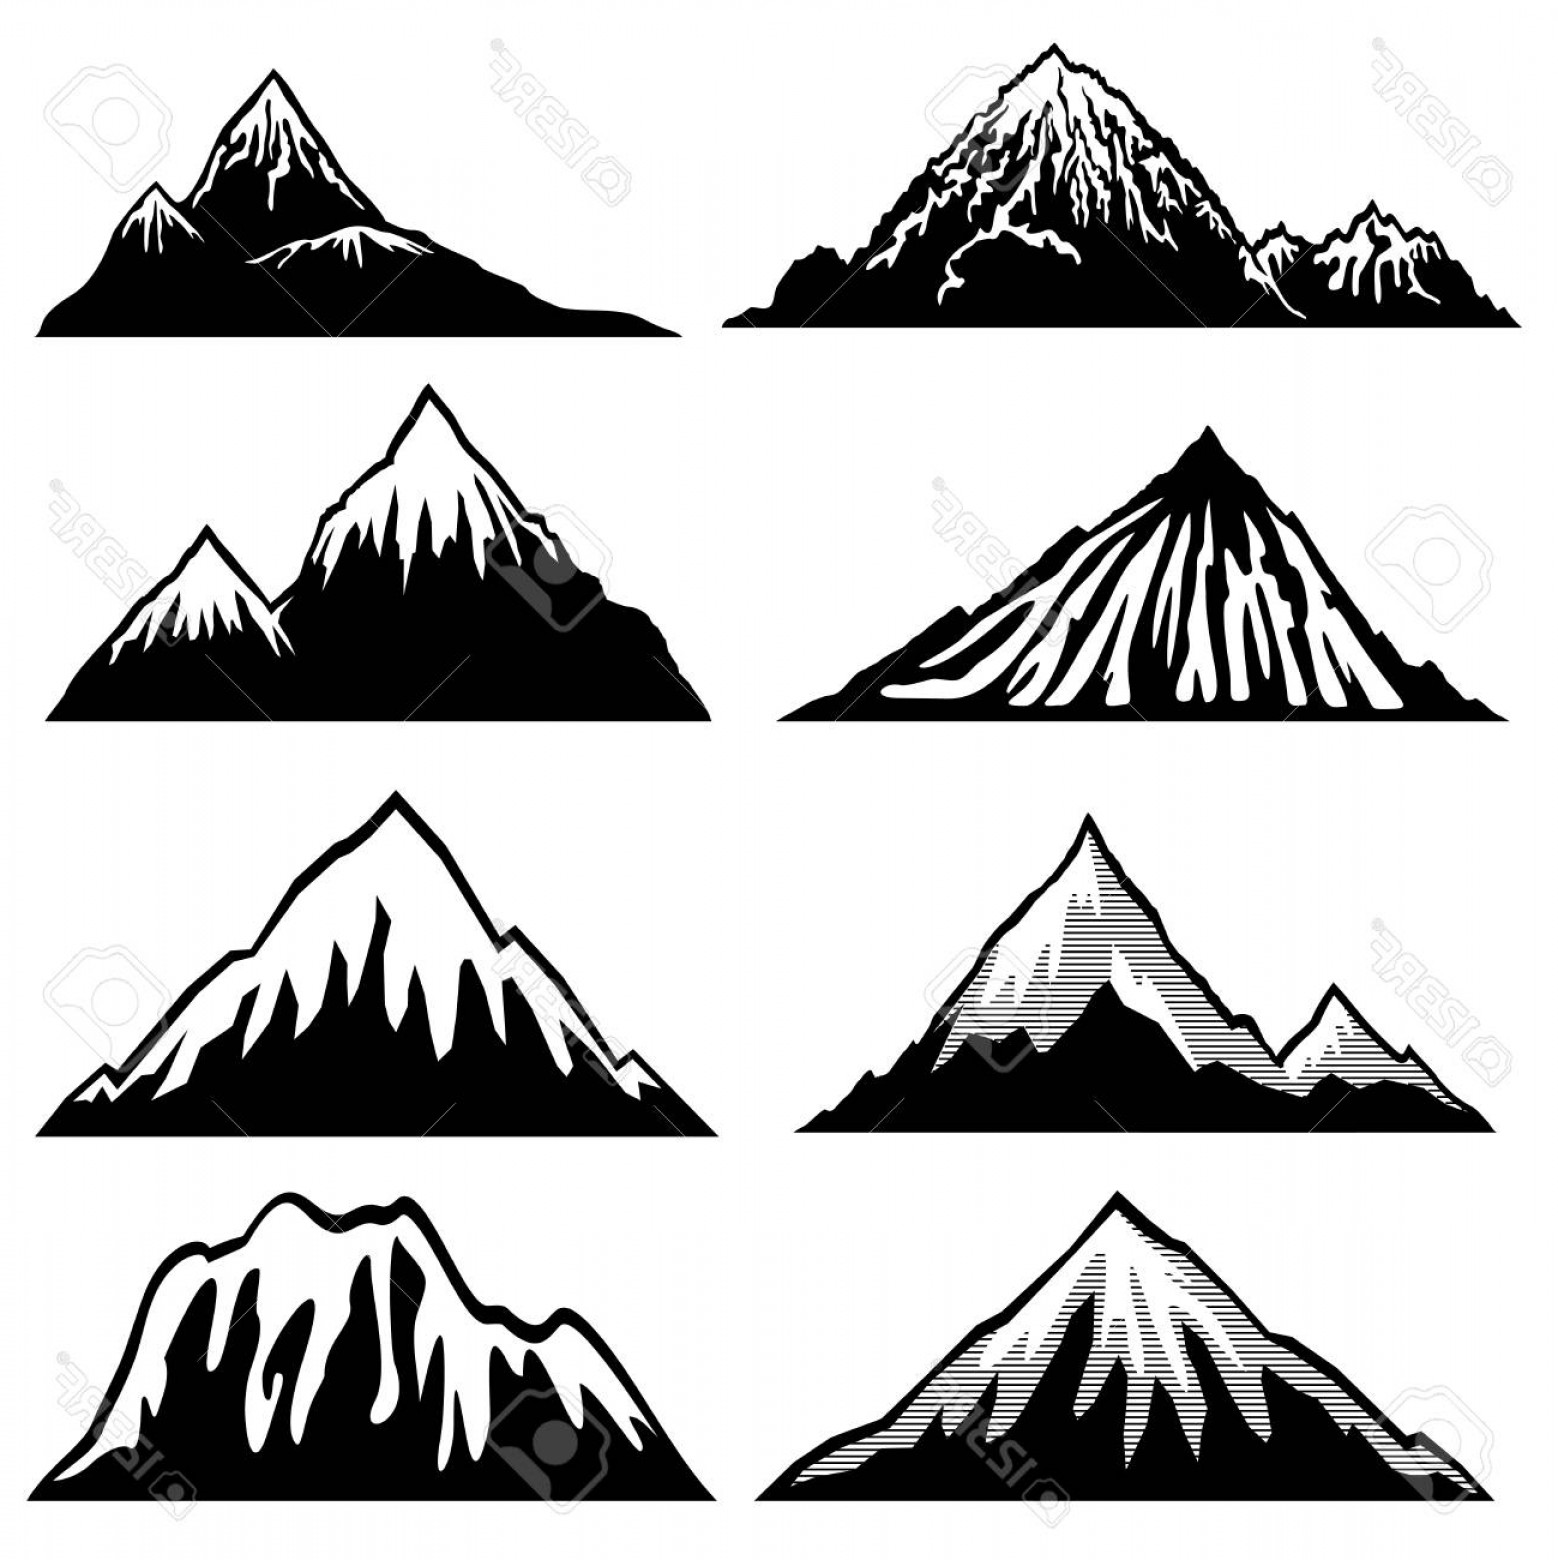 White Mountain Silhouette Vector Free: Photostock Vector Highlands Mountains Vector Silhouettes With Snow Capped Peaks And Hillsides Snow Mountain Summit Ill